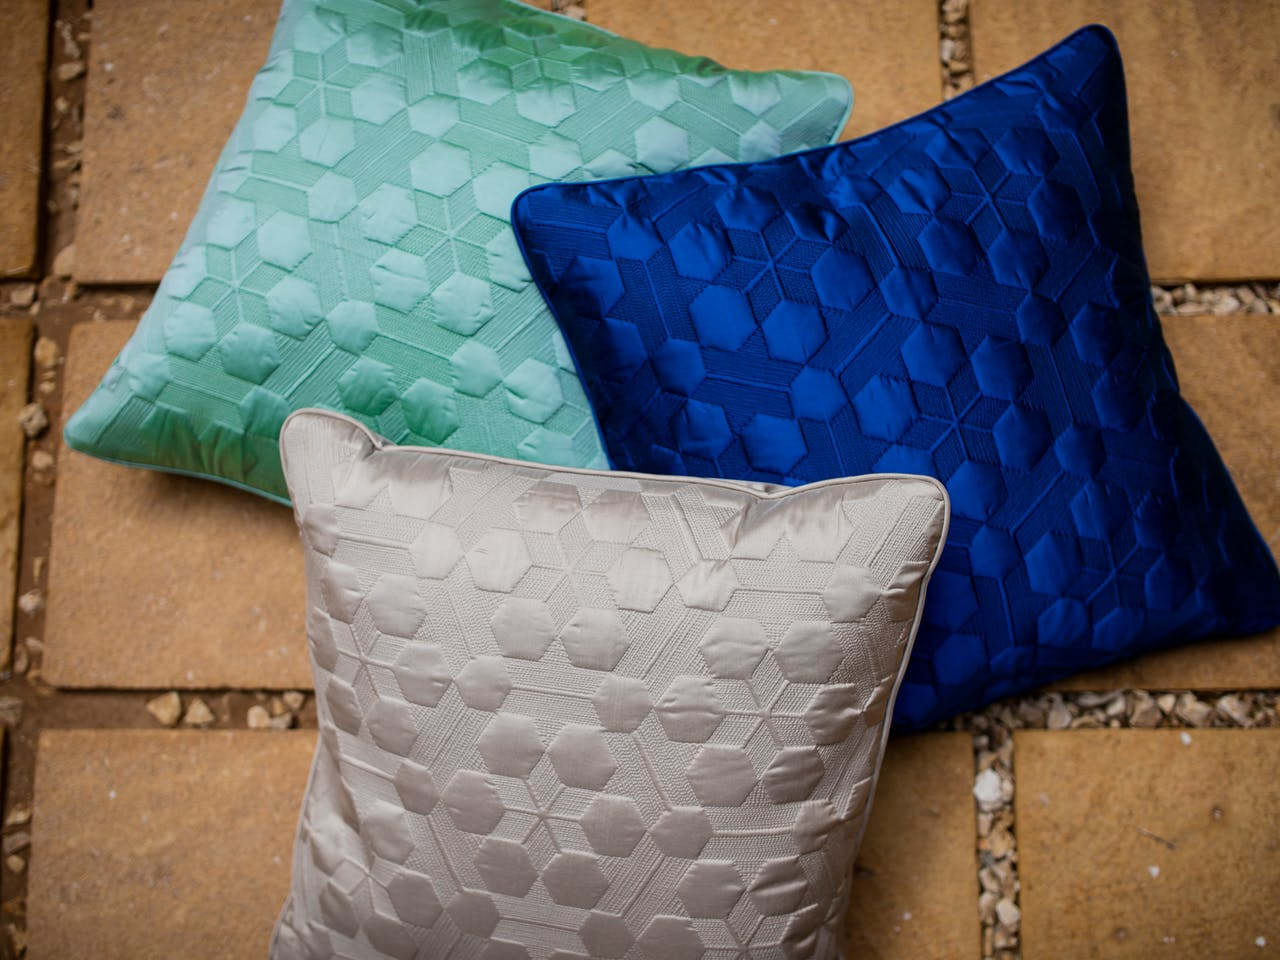 Silk embroidered cushions with traditional Jeddah patterns